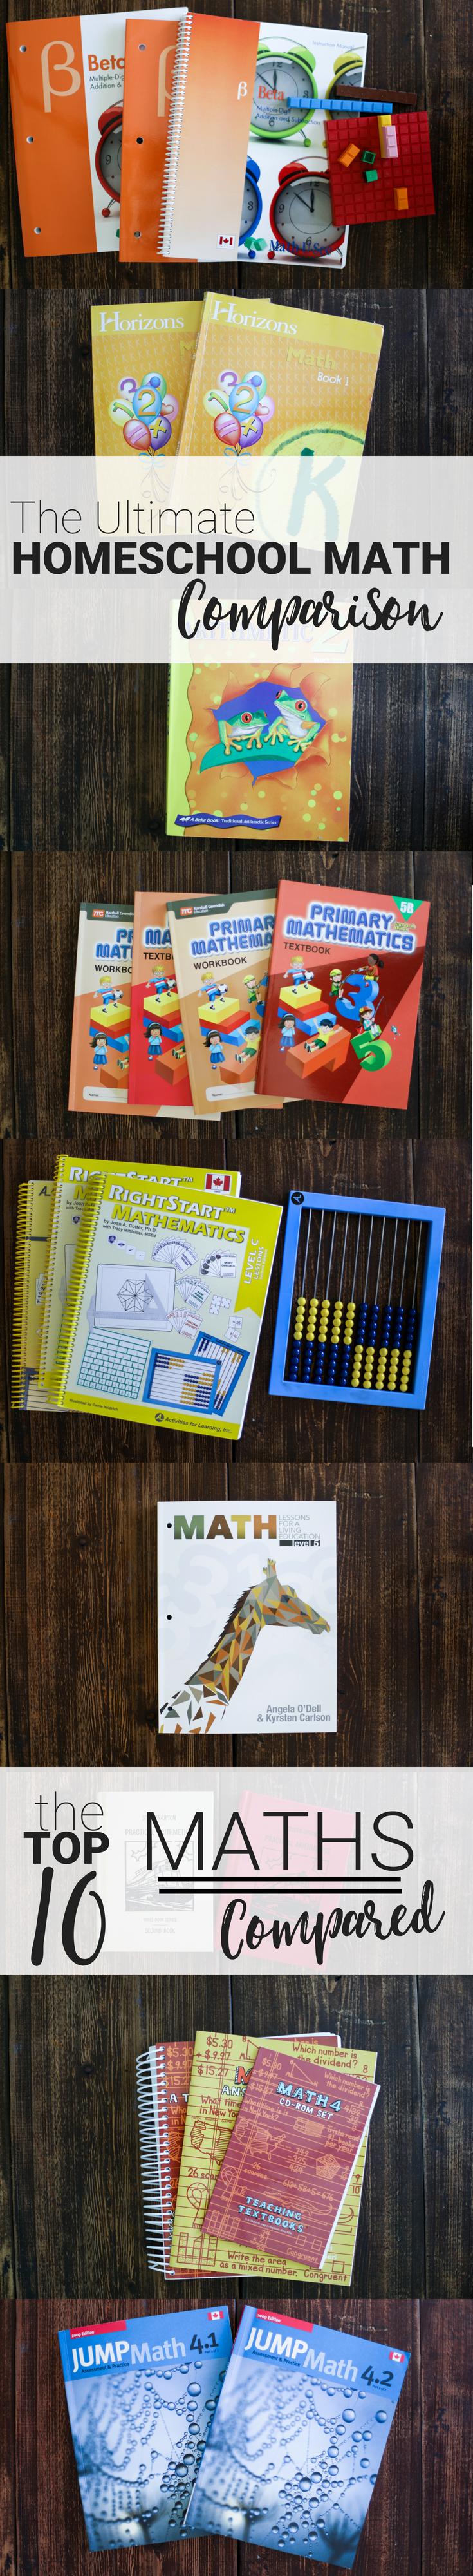 This is the ultimate homeschool math comparison! Video, pictures, and charts will walk you through ten of the top math curriculums on the market including Math U See, Teaching Textbooks, Singapore, Math Lessons for a Living Education, Life of Fred, Horizons, RightStart, Jump, A Beka, and even Strayer-Upton! Learn which homeschool styes and learning styles each math will work best for and see inside all of them! This is the ultimate shopping tool to help you decide on math curriculum once and for all!